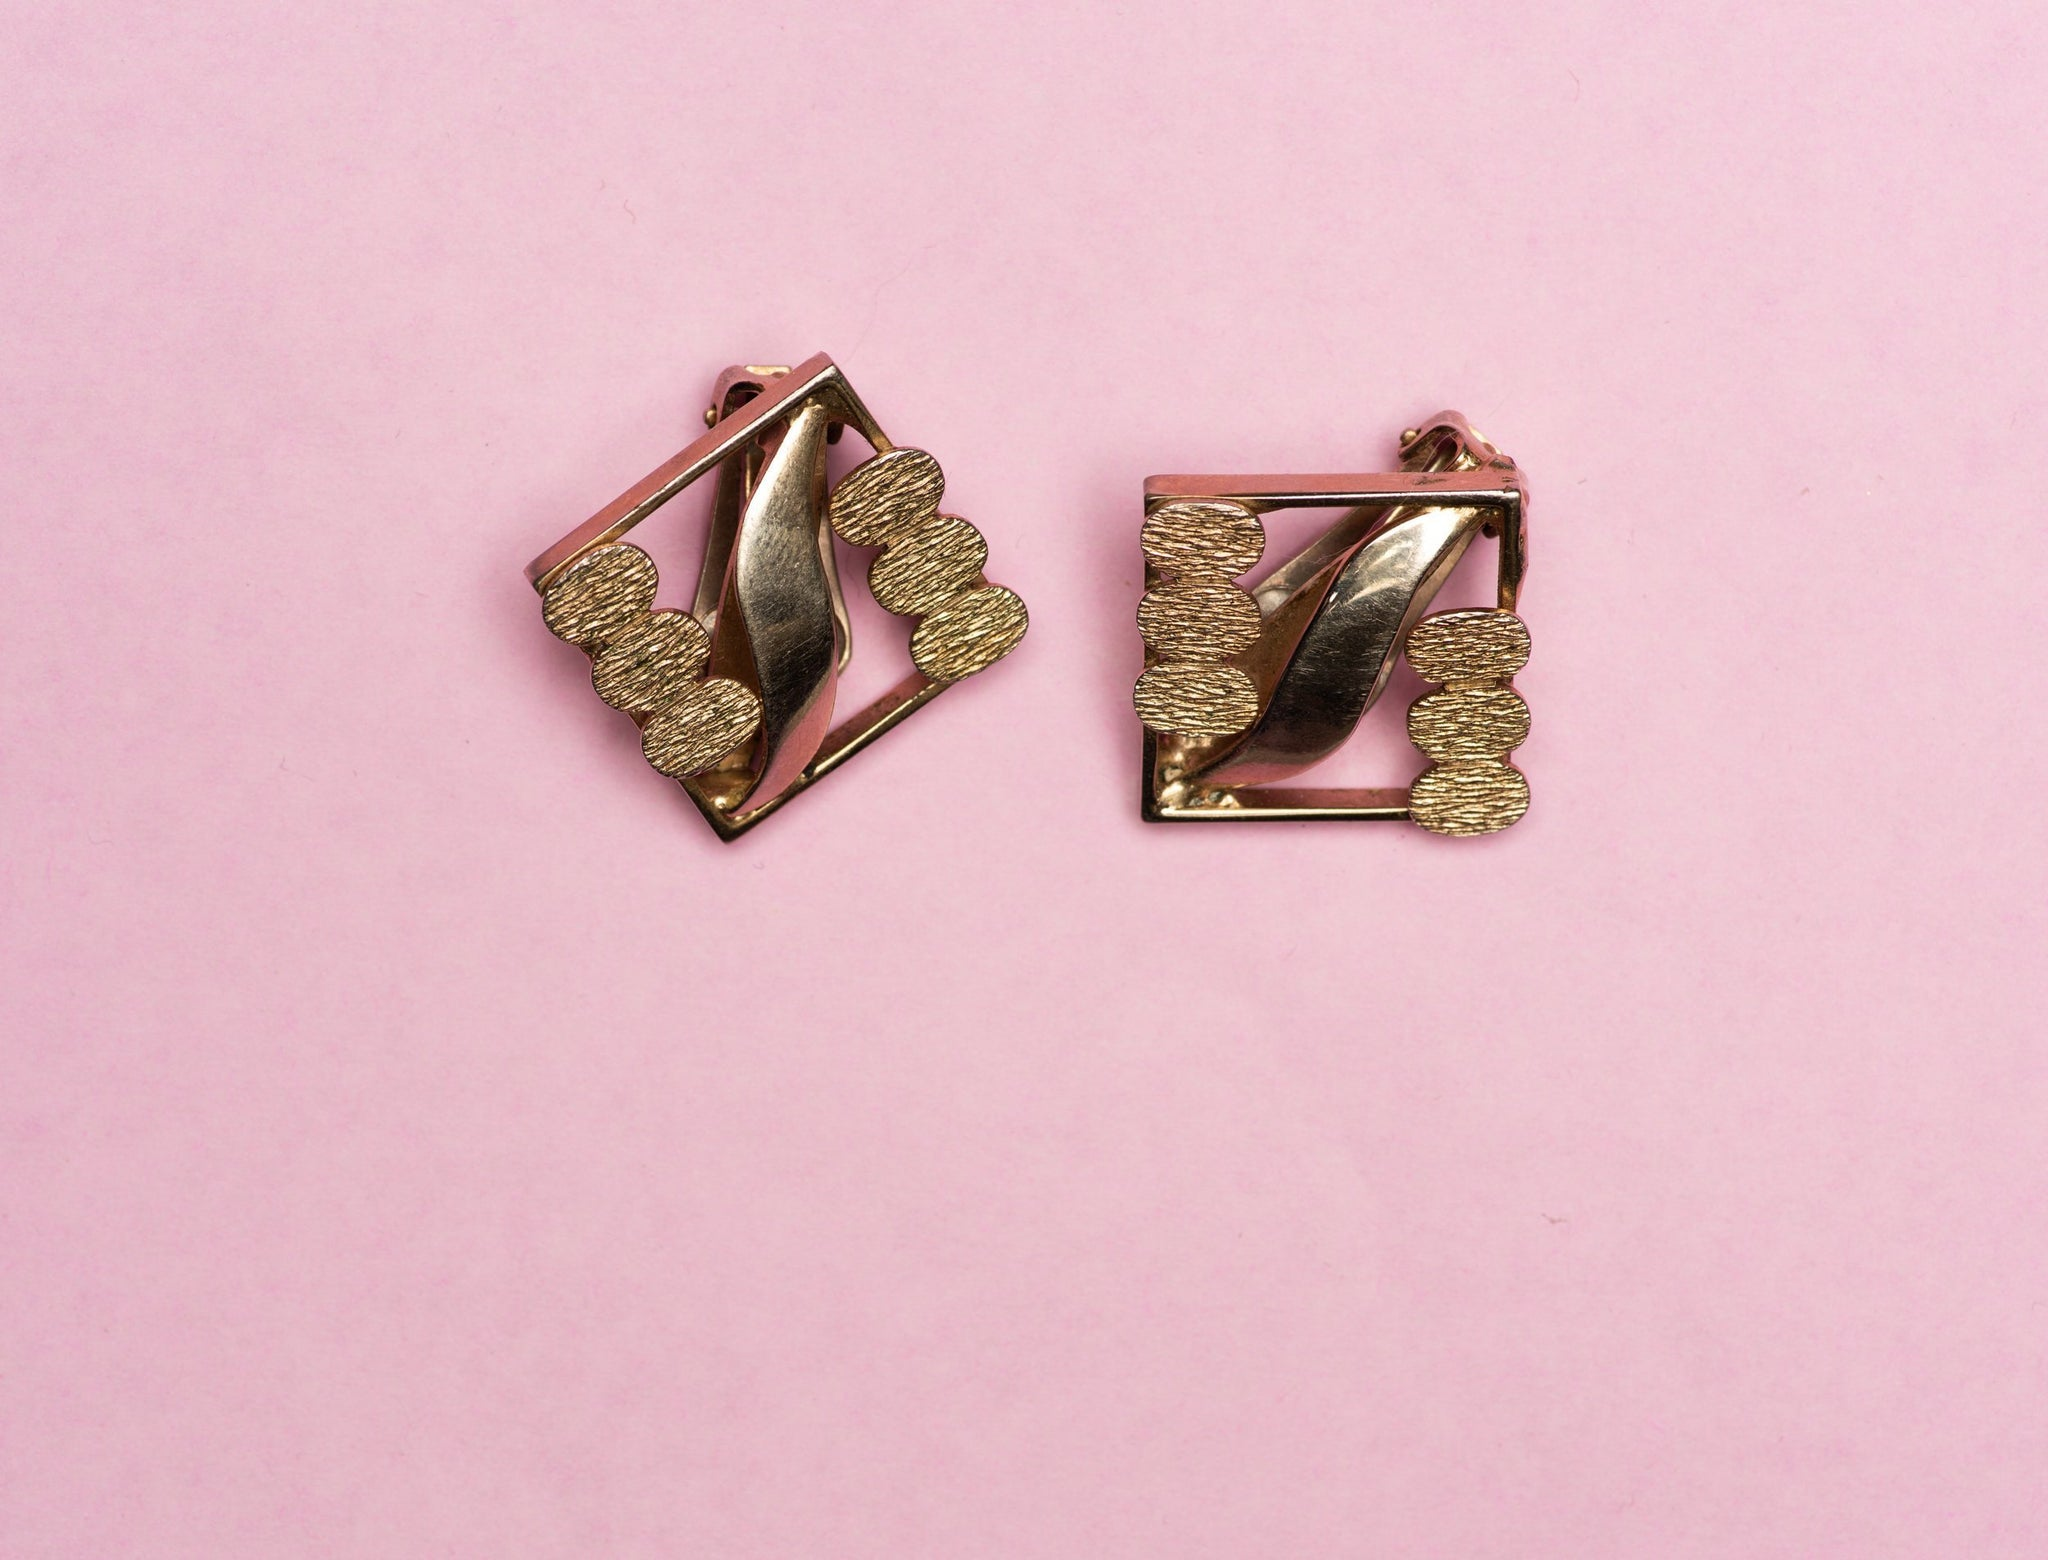 Vintage Art Deco Square Clip-on Earrings - Closed Caption